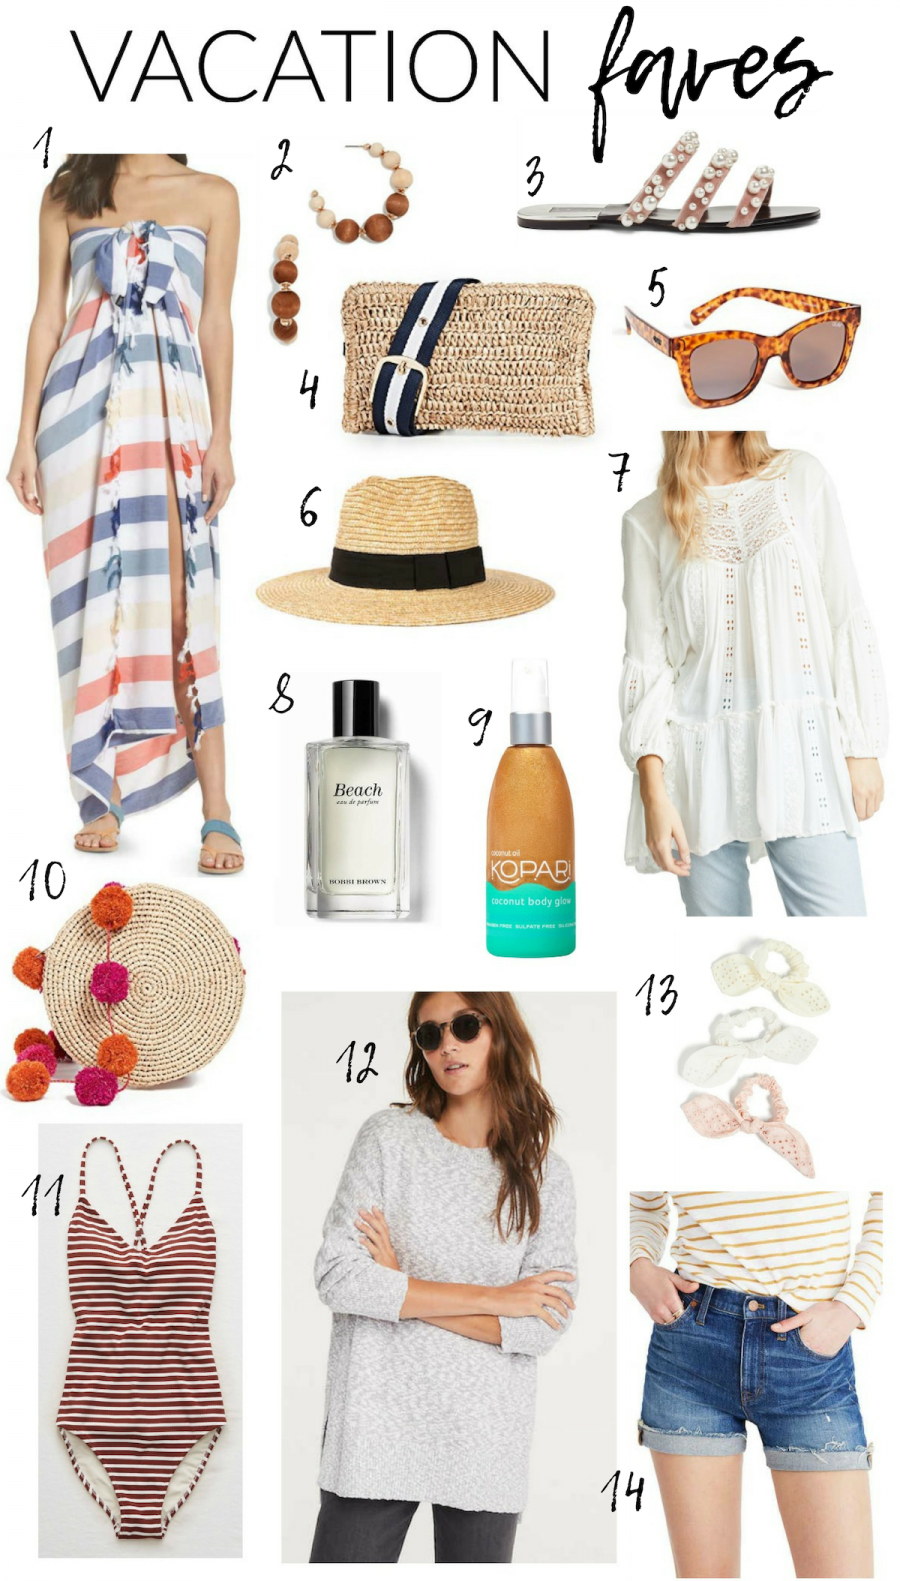 Current vacation faves